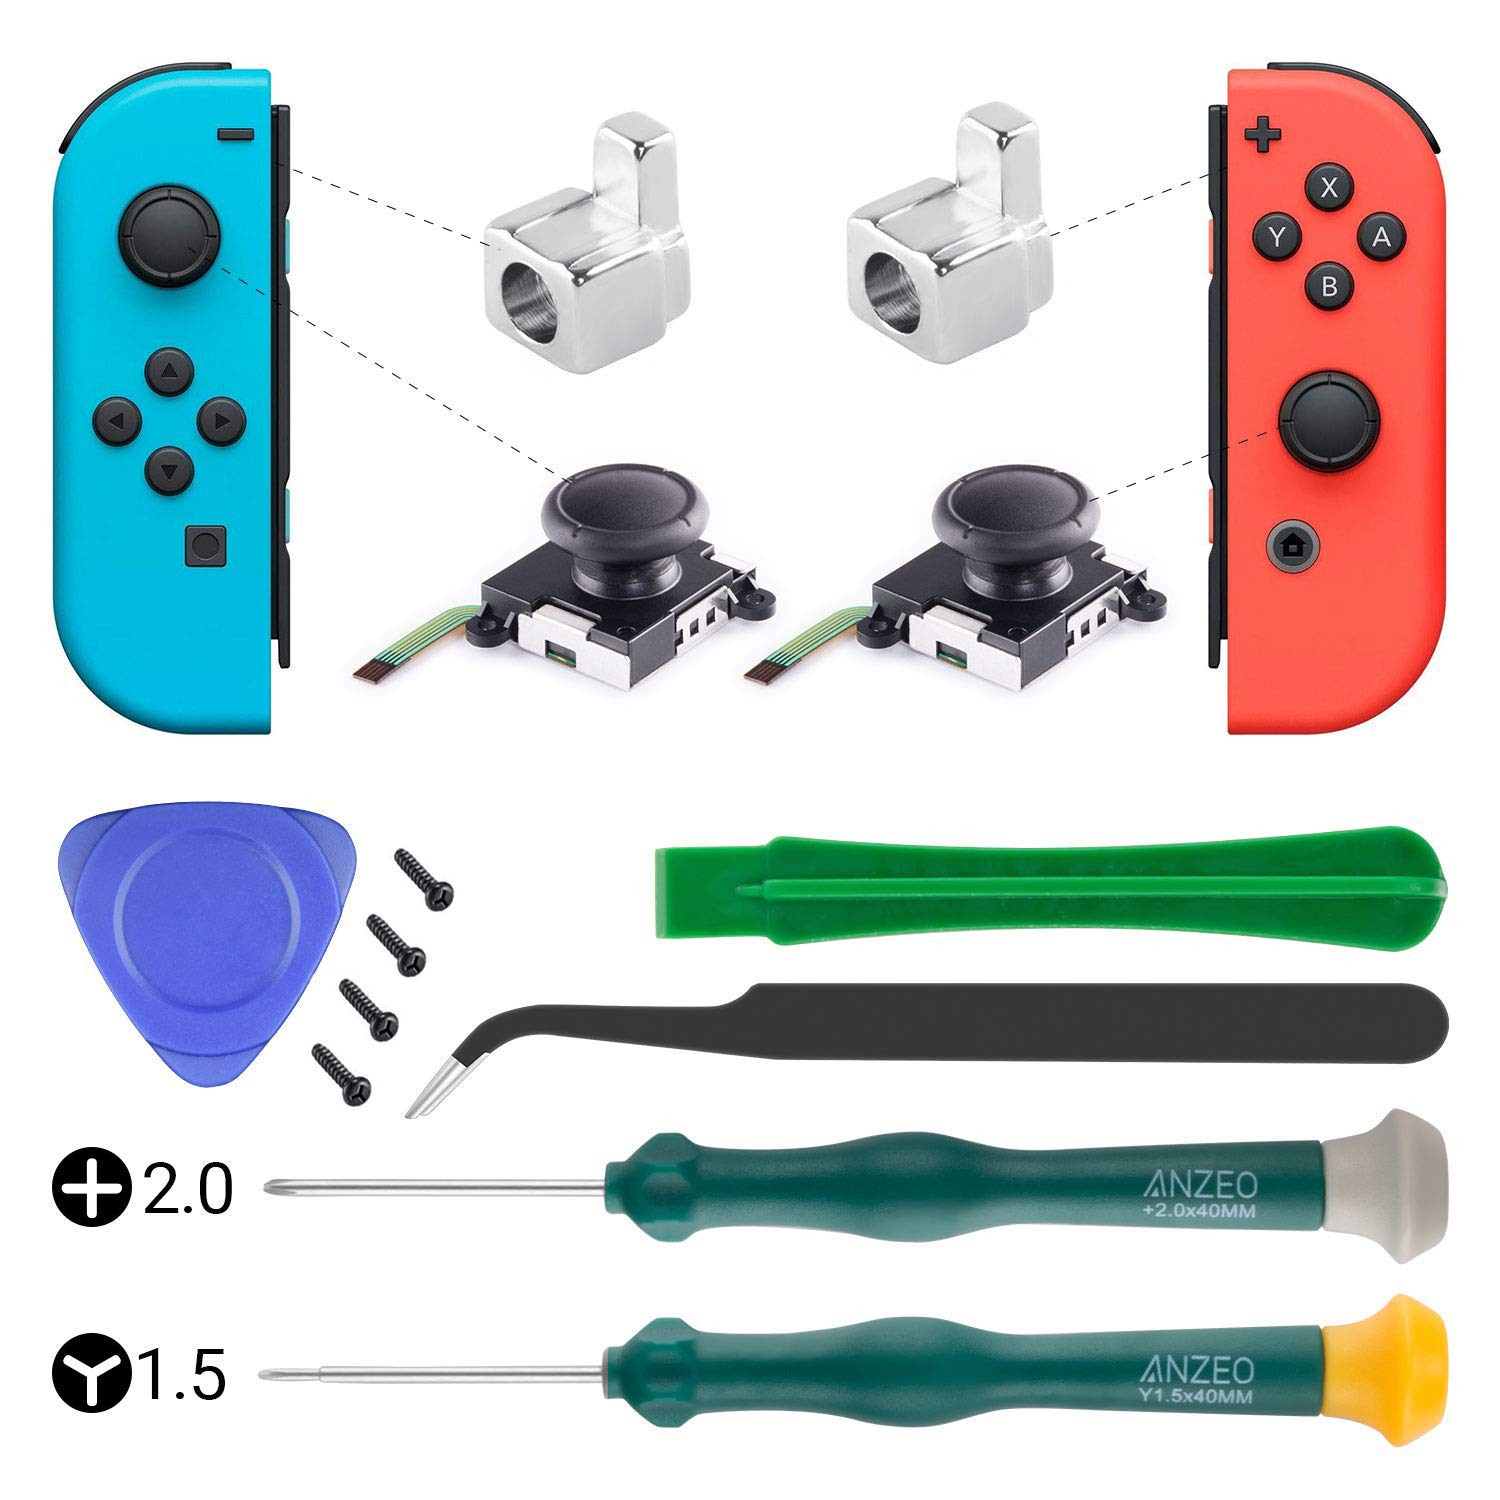 UOWGA 2 Pack Joy Con Analog Joystick, Thumb Stick, Rocker 3D for Joy-con Replacement with Repair Tool + 2 Metal Lock Buckles for Nintendo Switch by UOWGA